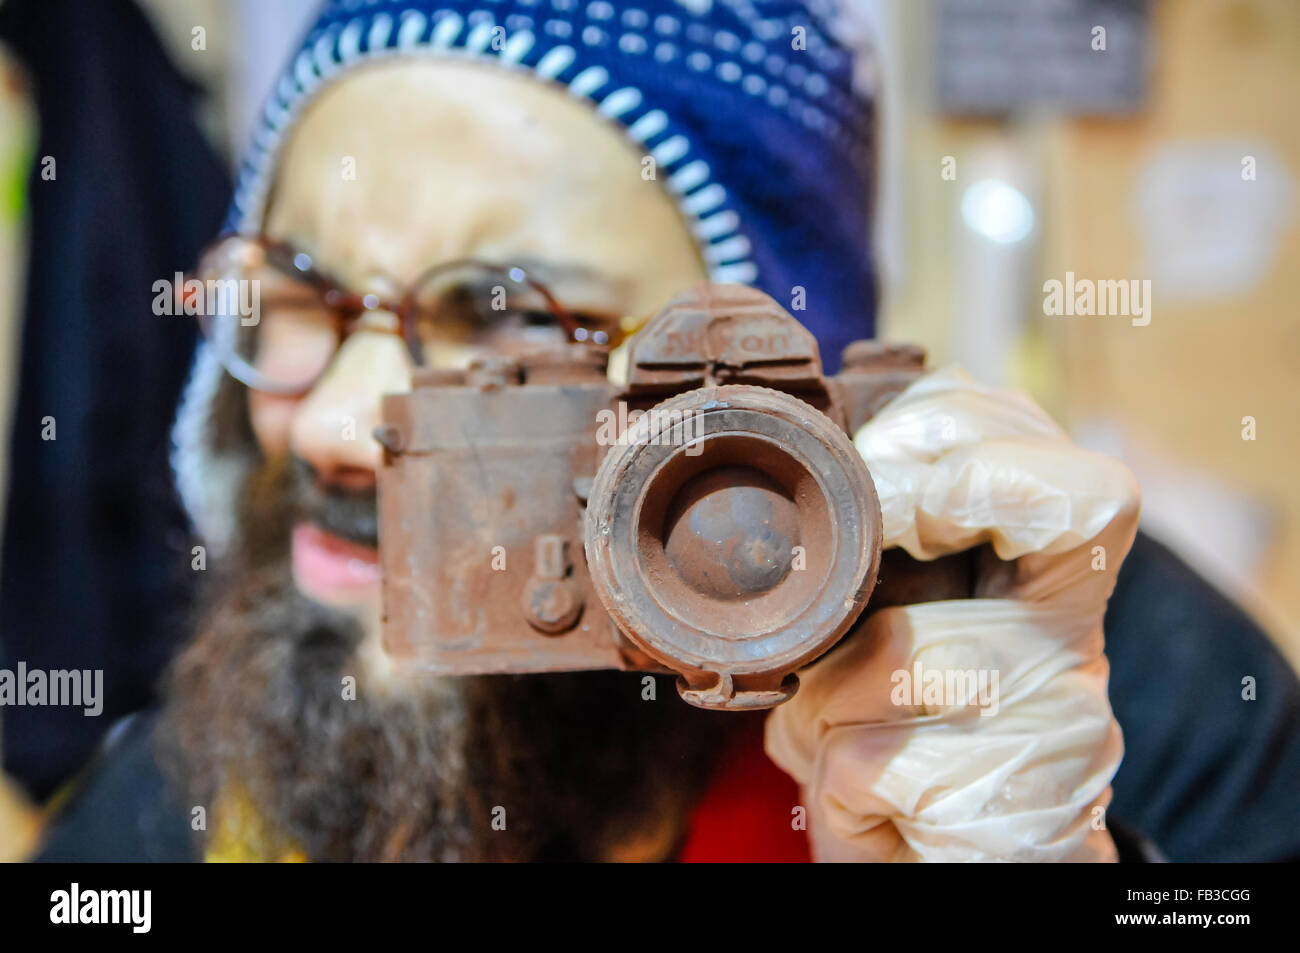 A market stall holder holds up an SLR camera made entirely from chocolate. - Stock Image